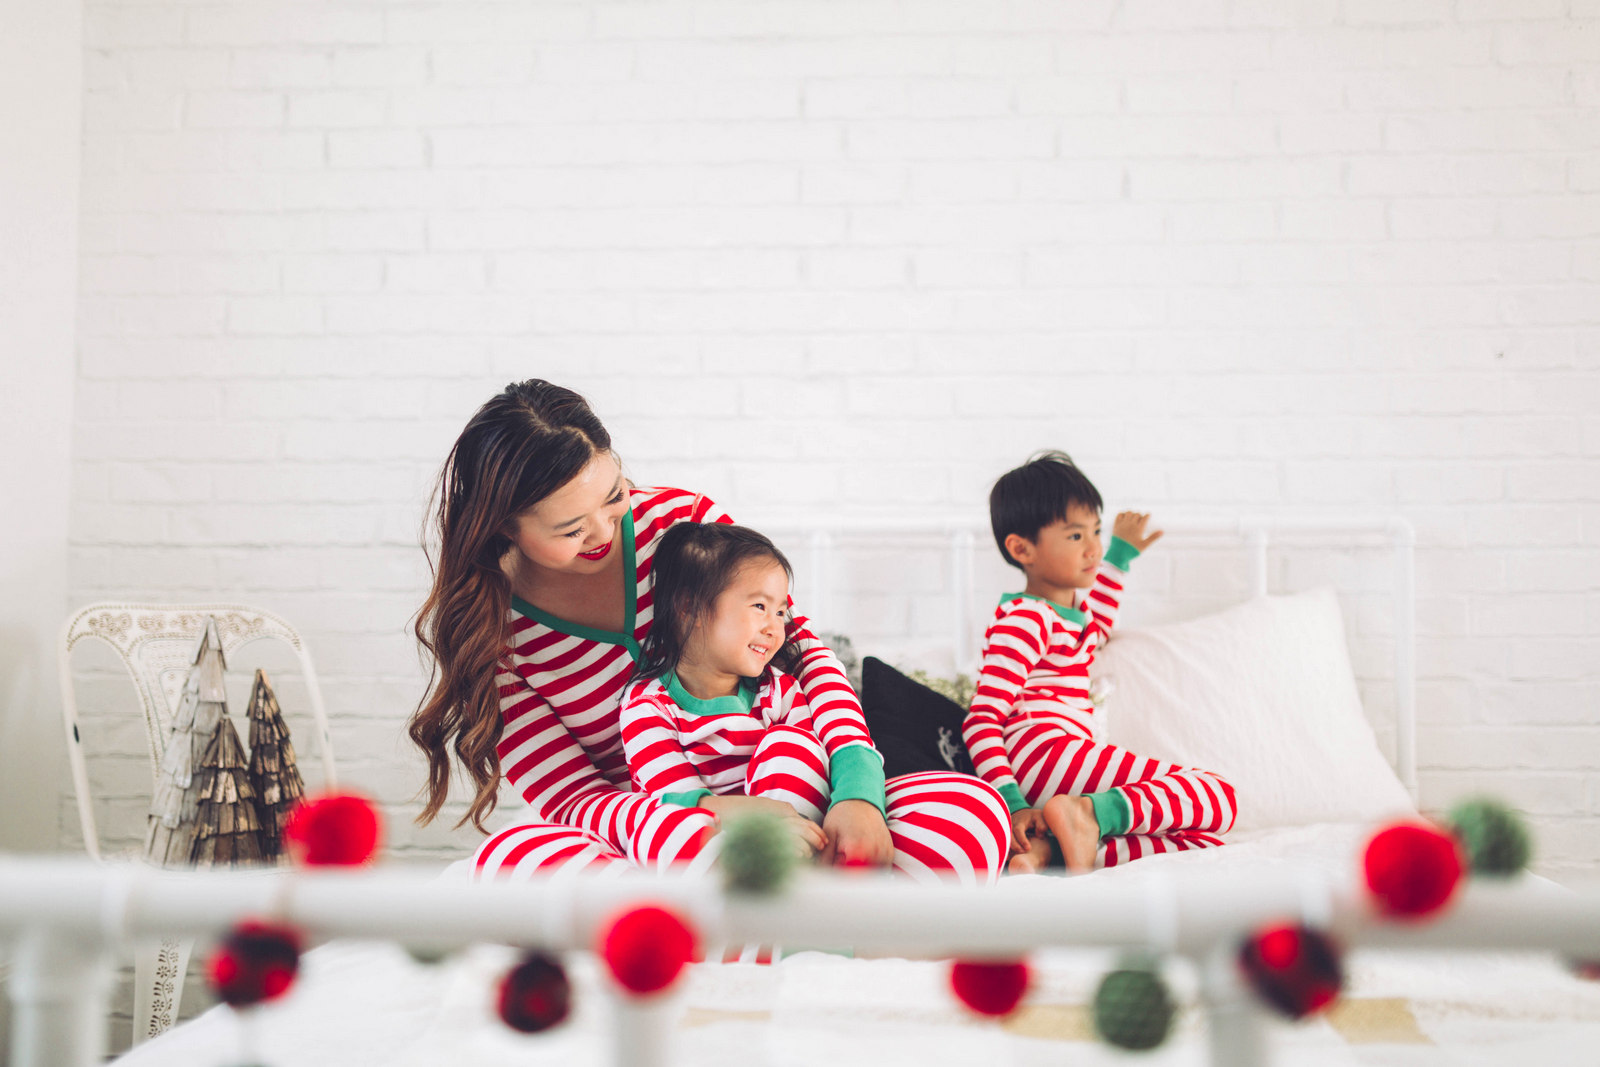 Best Places To Buy Matching Family Pajamas by Utah fashion blogger Sandy A La Mode